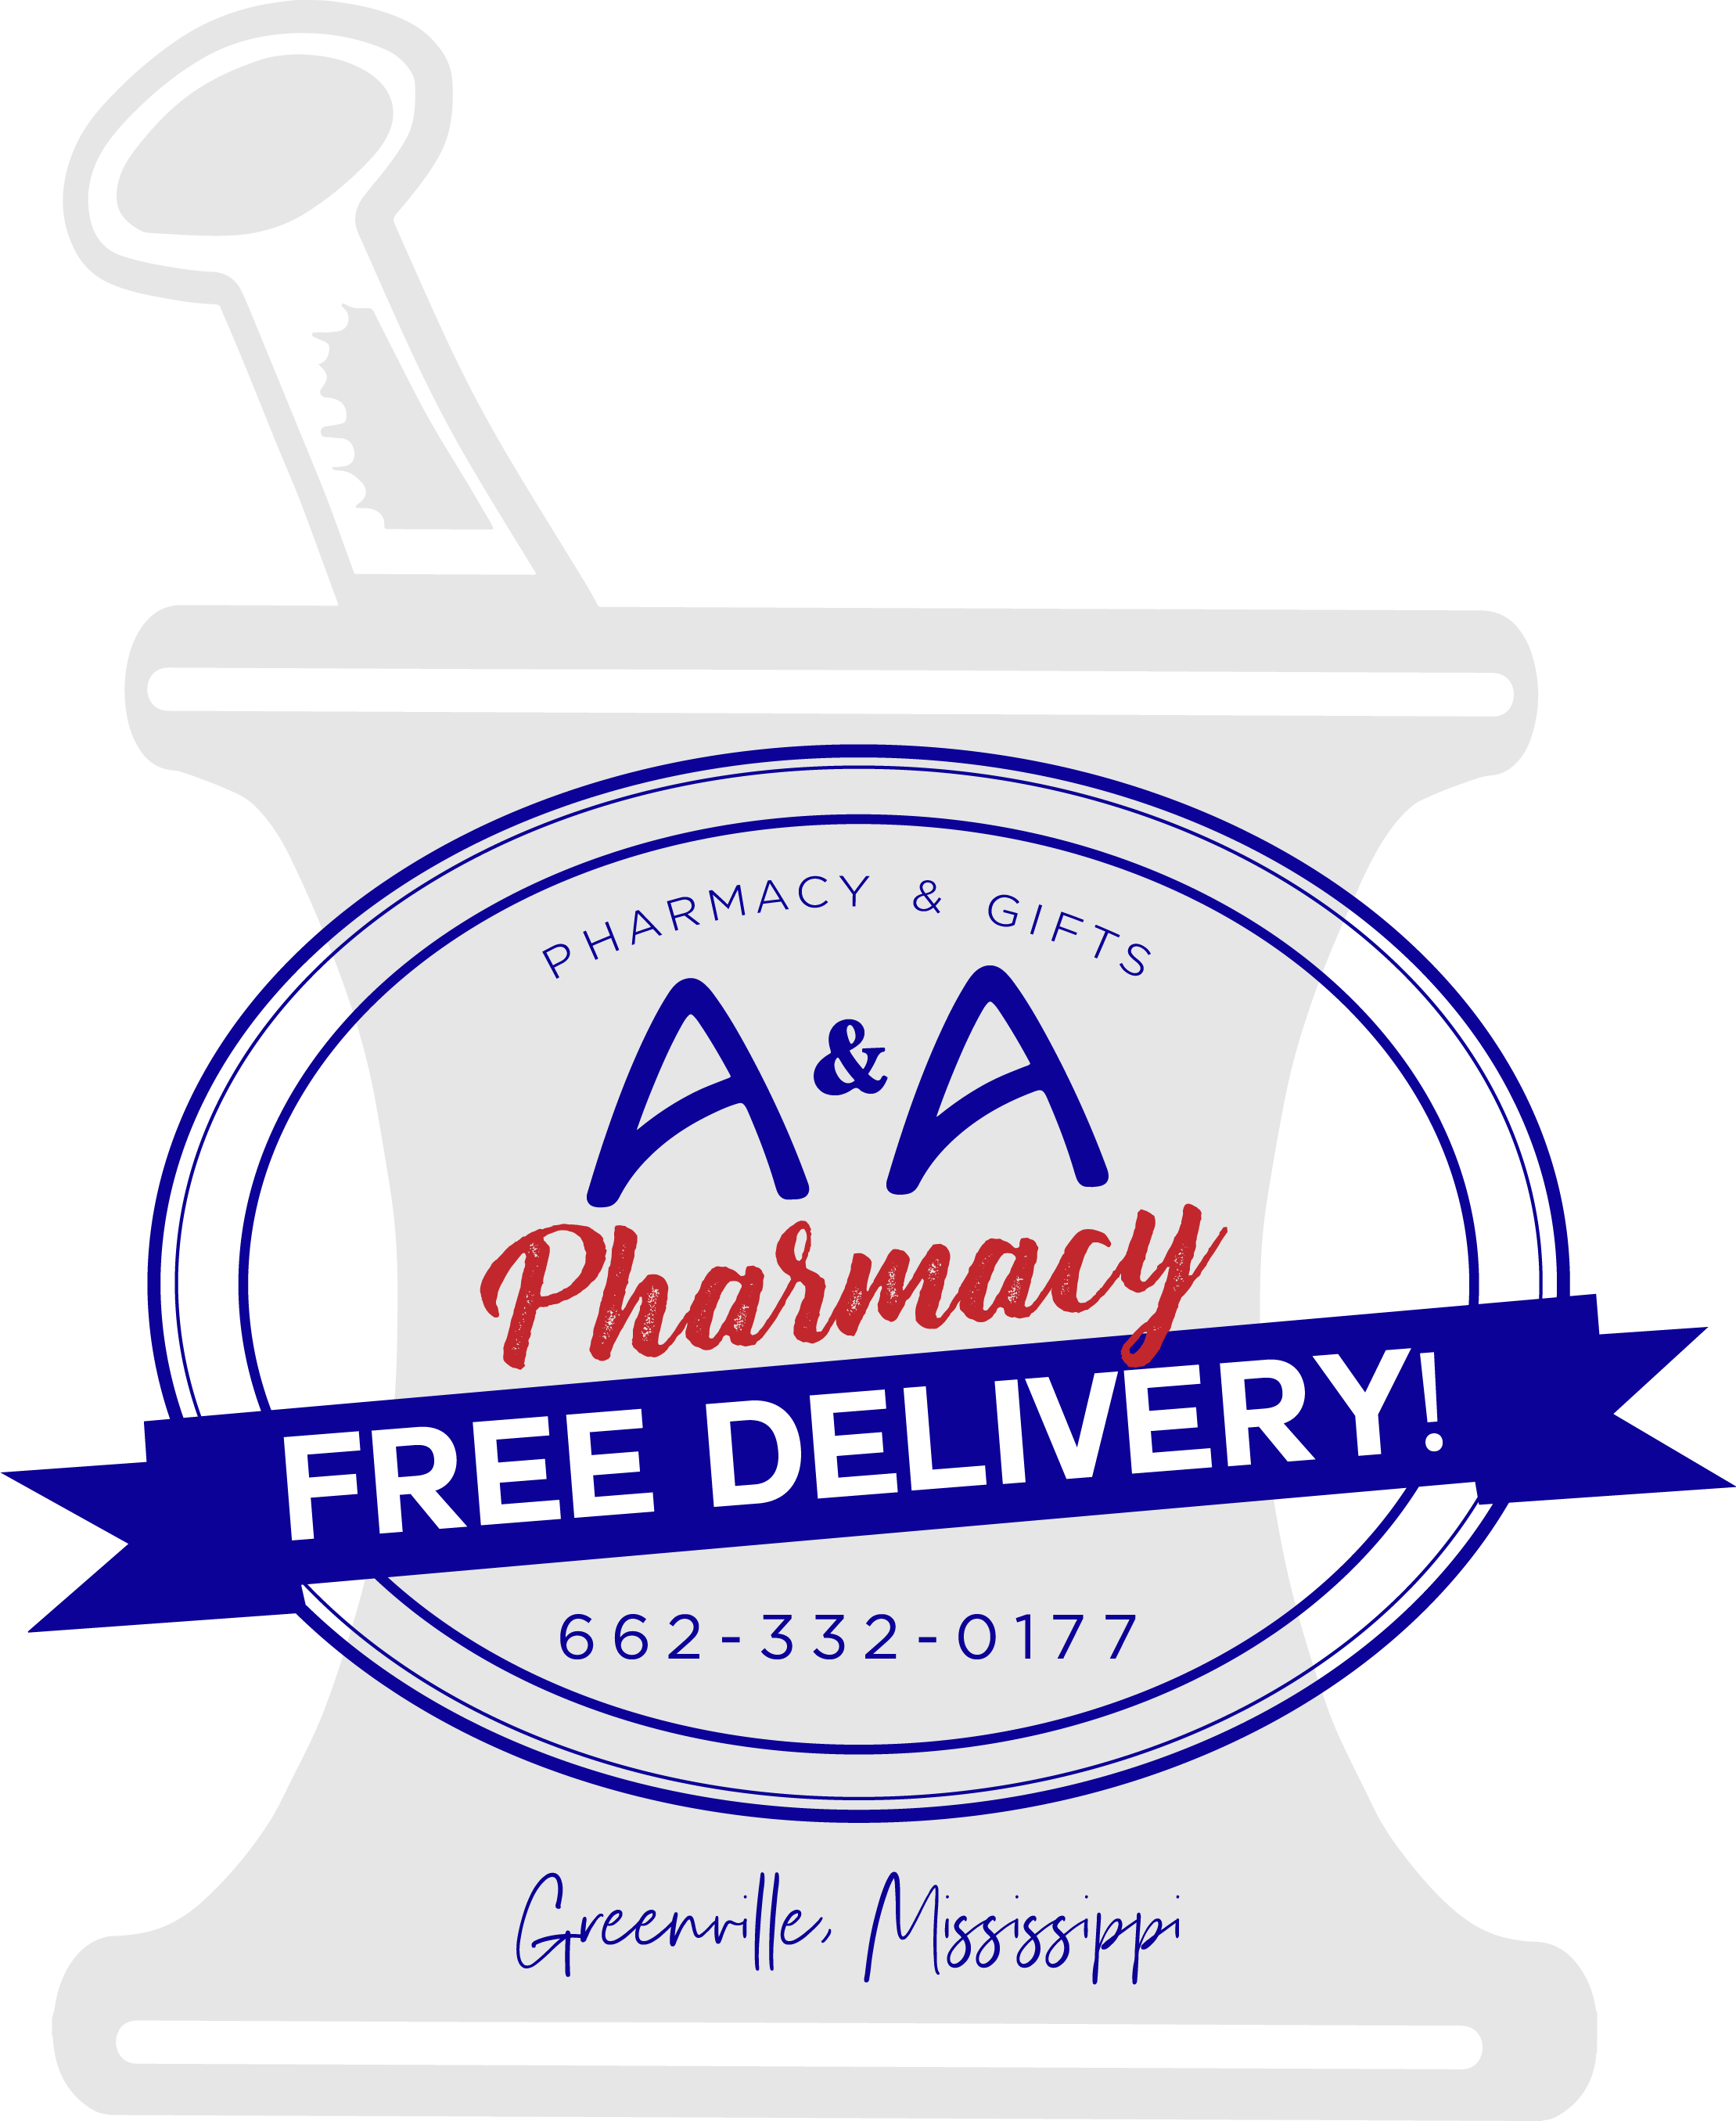 A&A Pharmacy